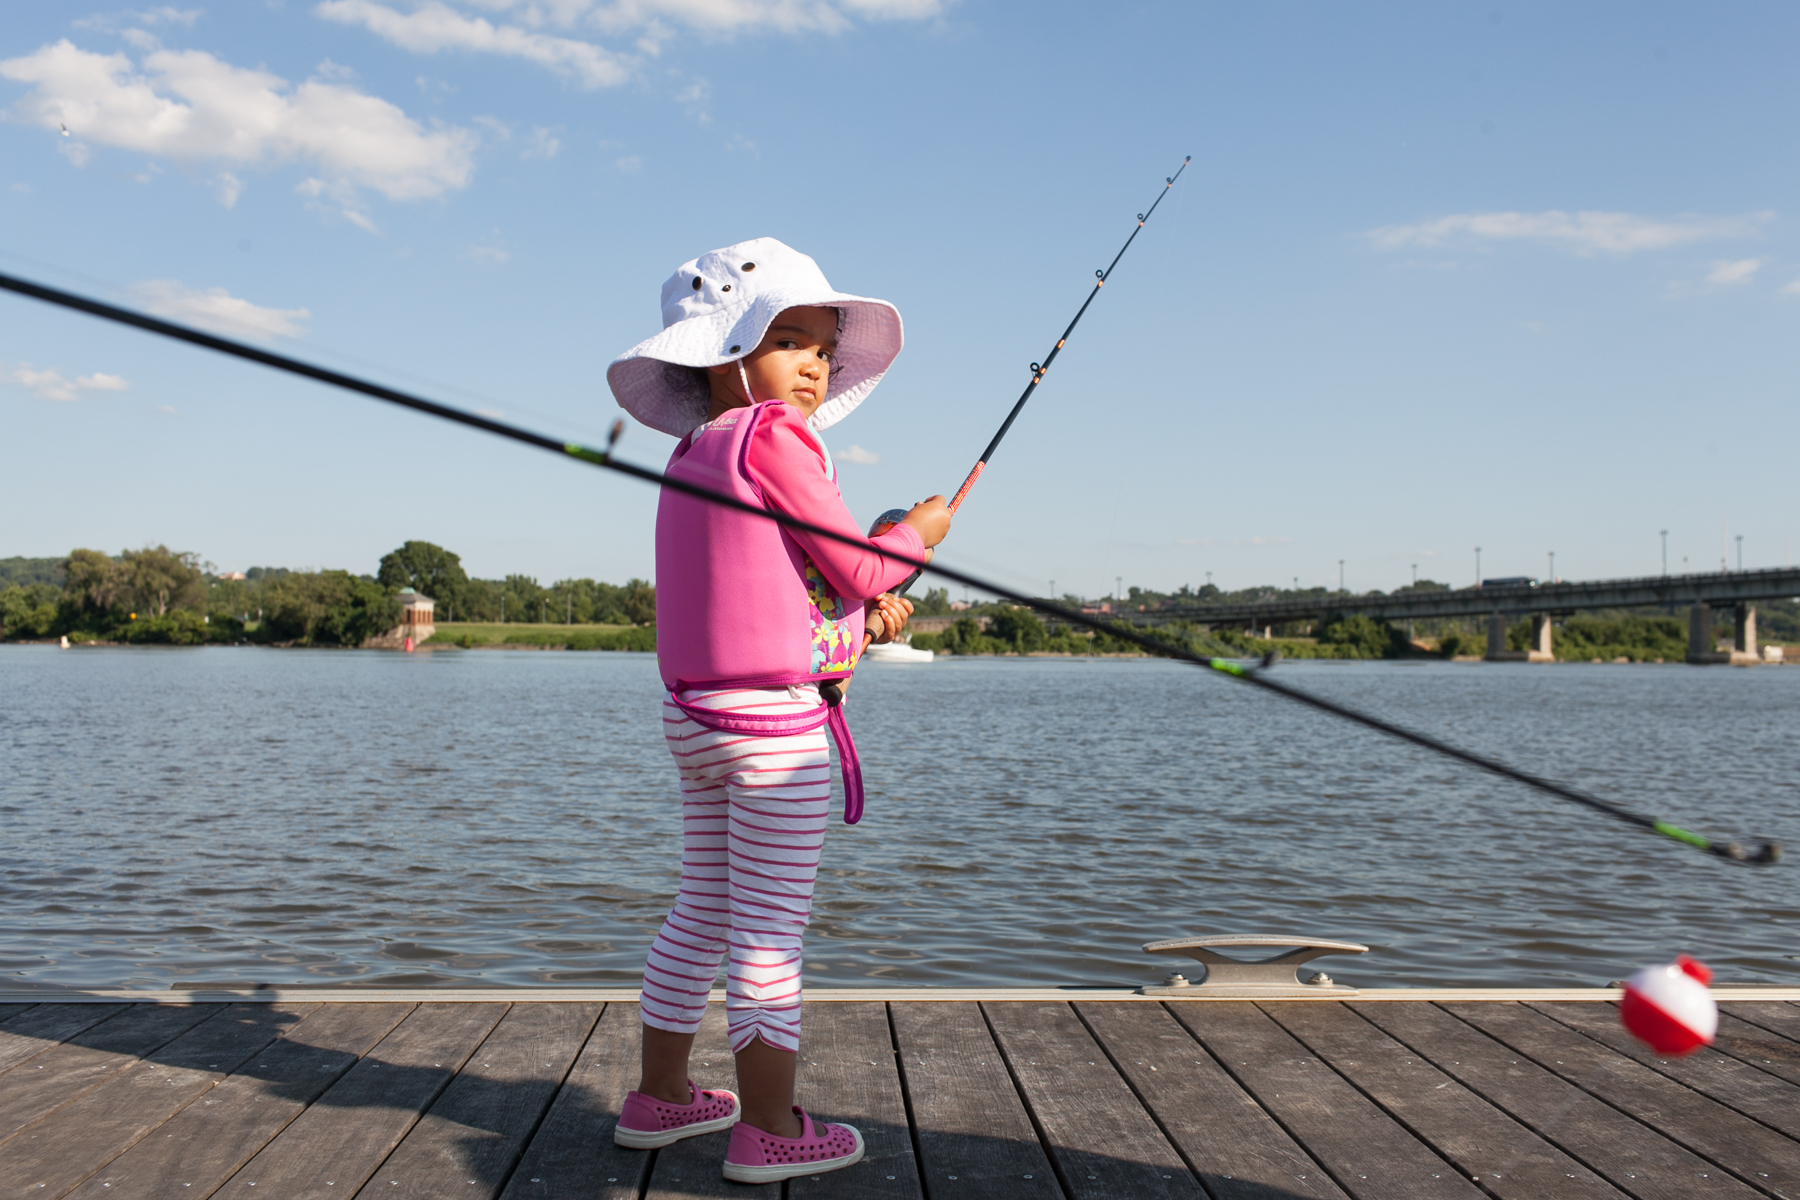 Friday Night Fishing, a free event where kids learn how to catch and release fish, from the pier by Nationals Stadium in Diamond Teague Park.